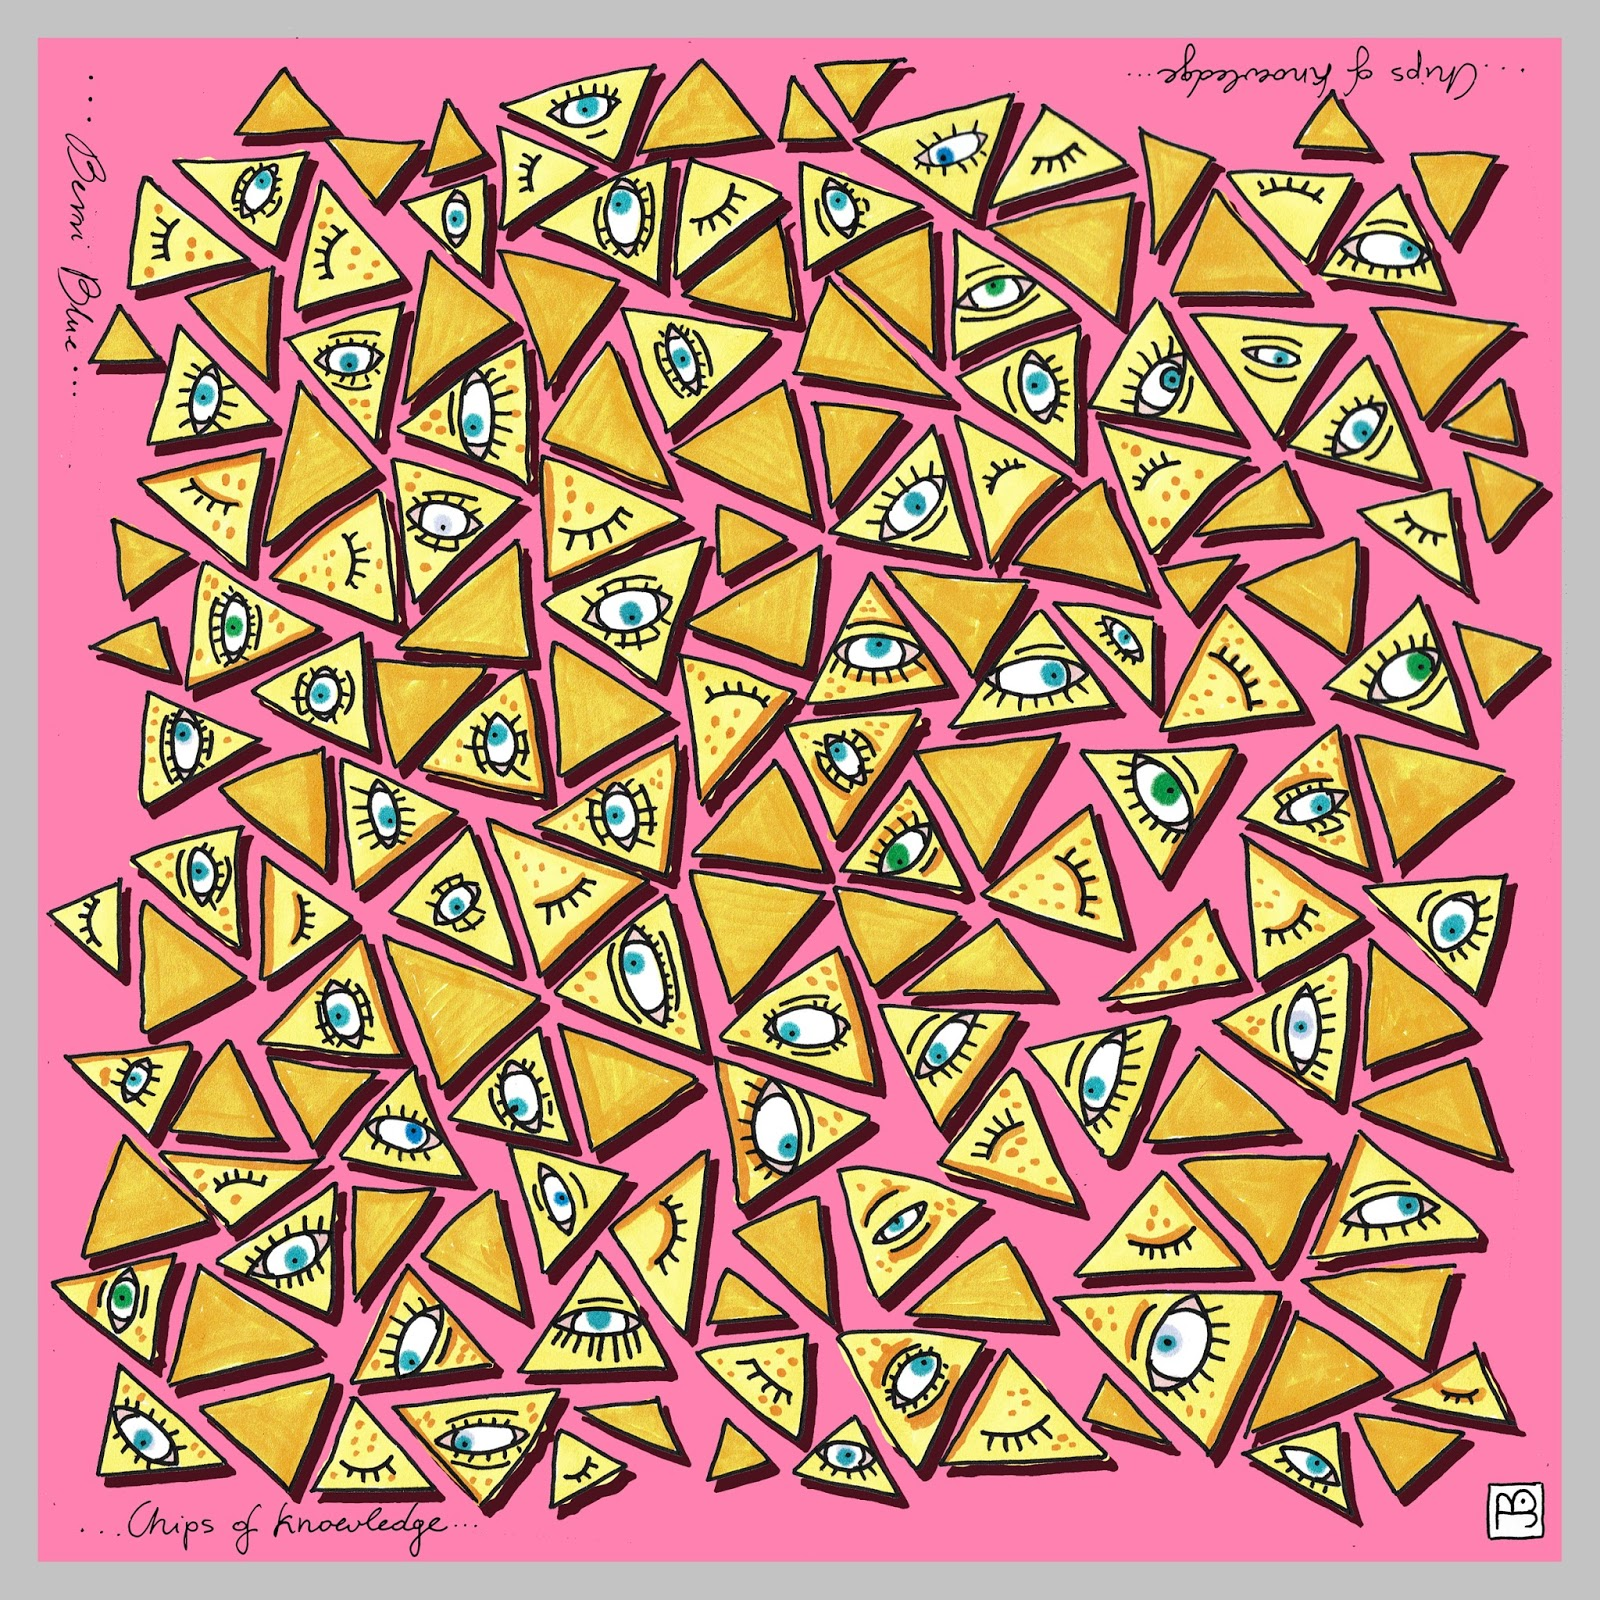 """Berriblue Silk Scarf Chips of Knowledge"""" border="""